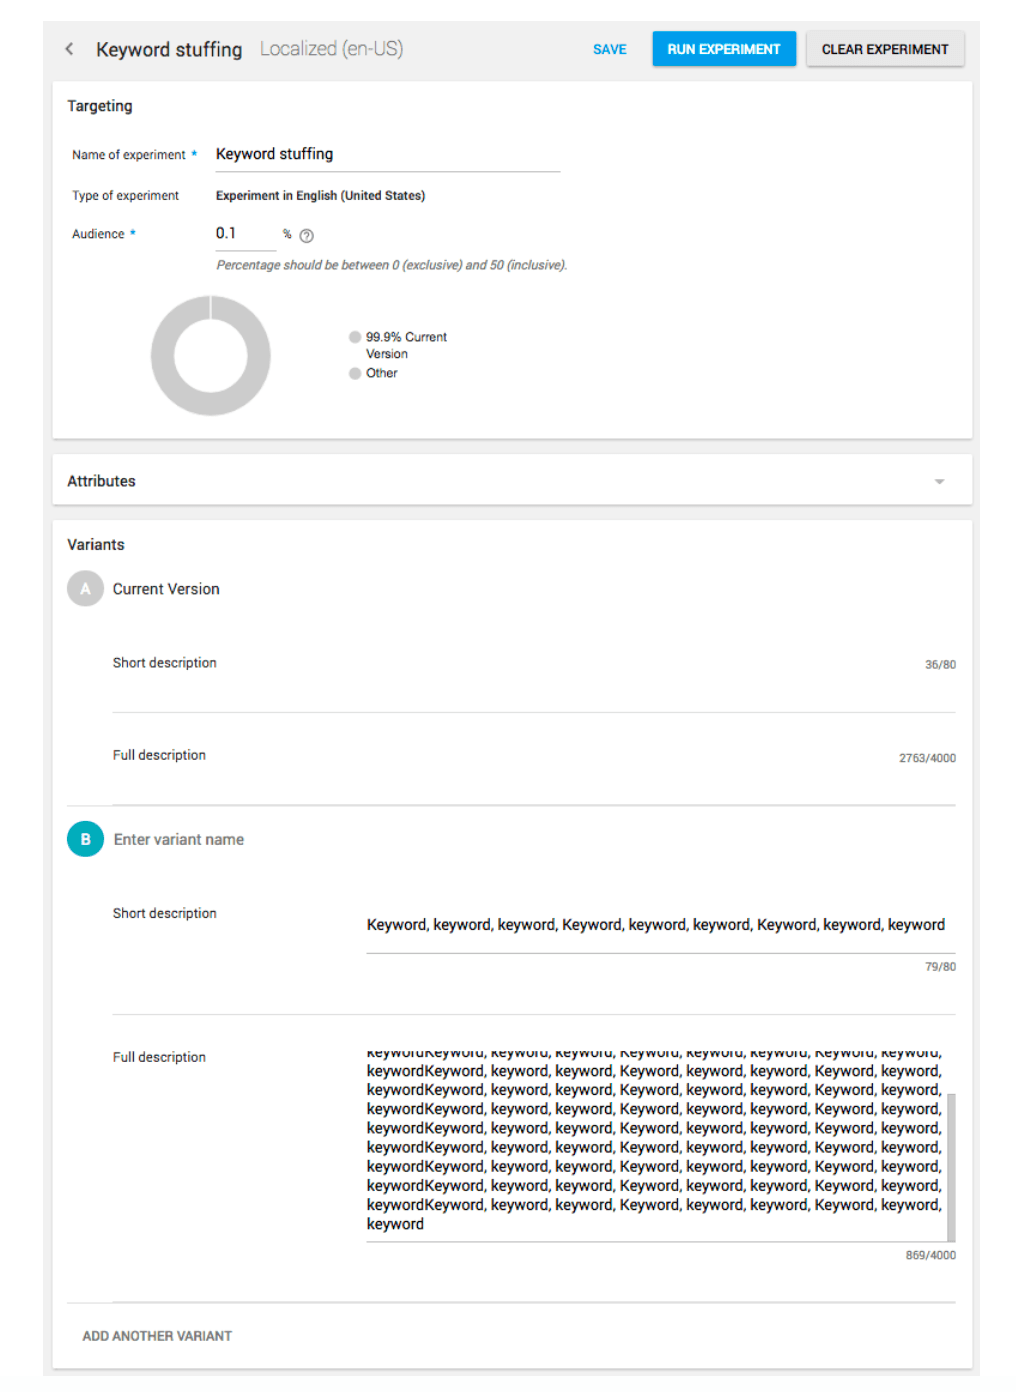 Screenshot depicting a black hat A/B test purposed for keyword stuffing. Only 1 in 1.000 Store Listing Visitors would see the keyword stuffed variant.